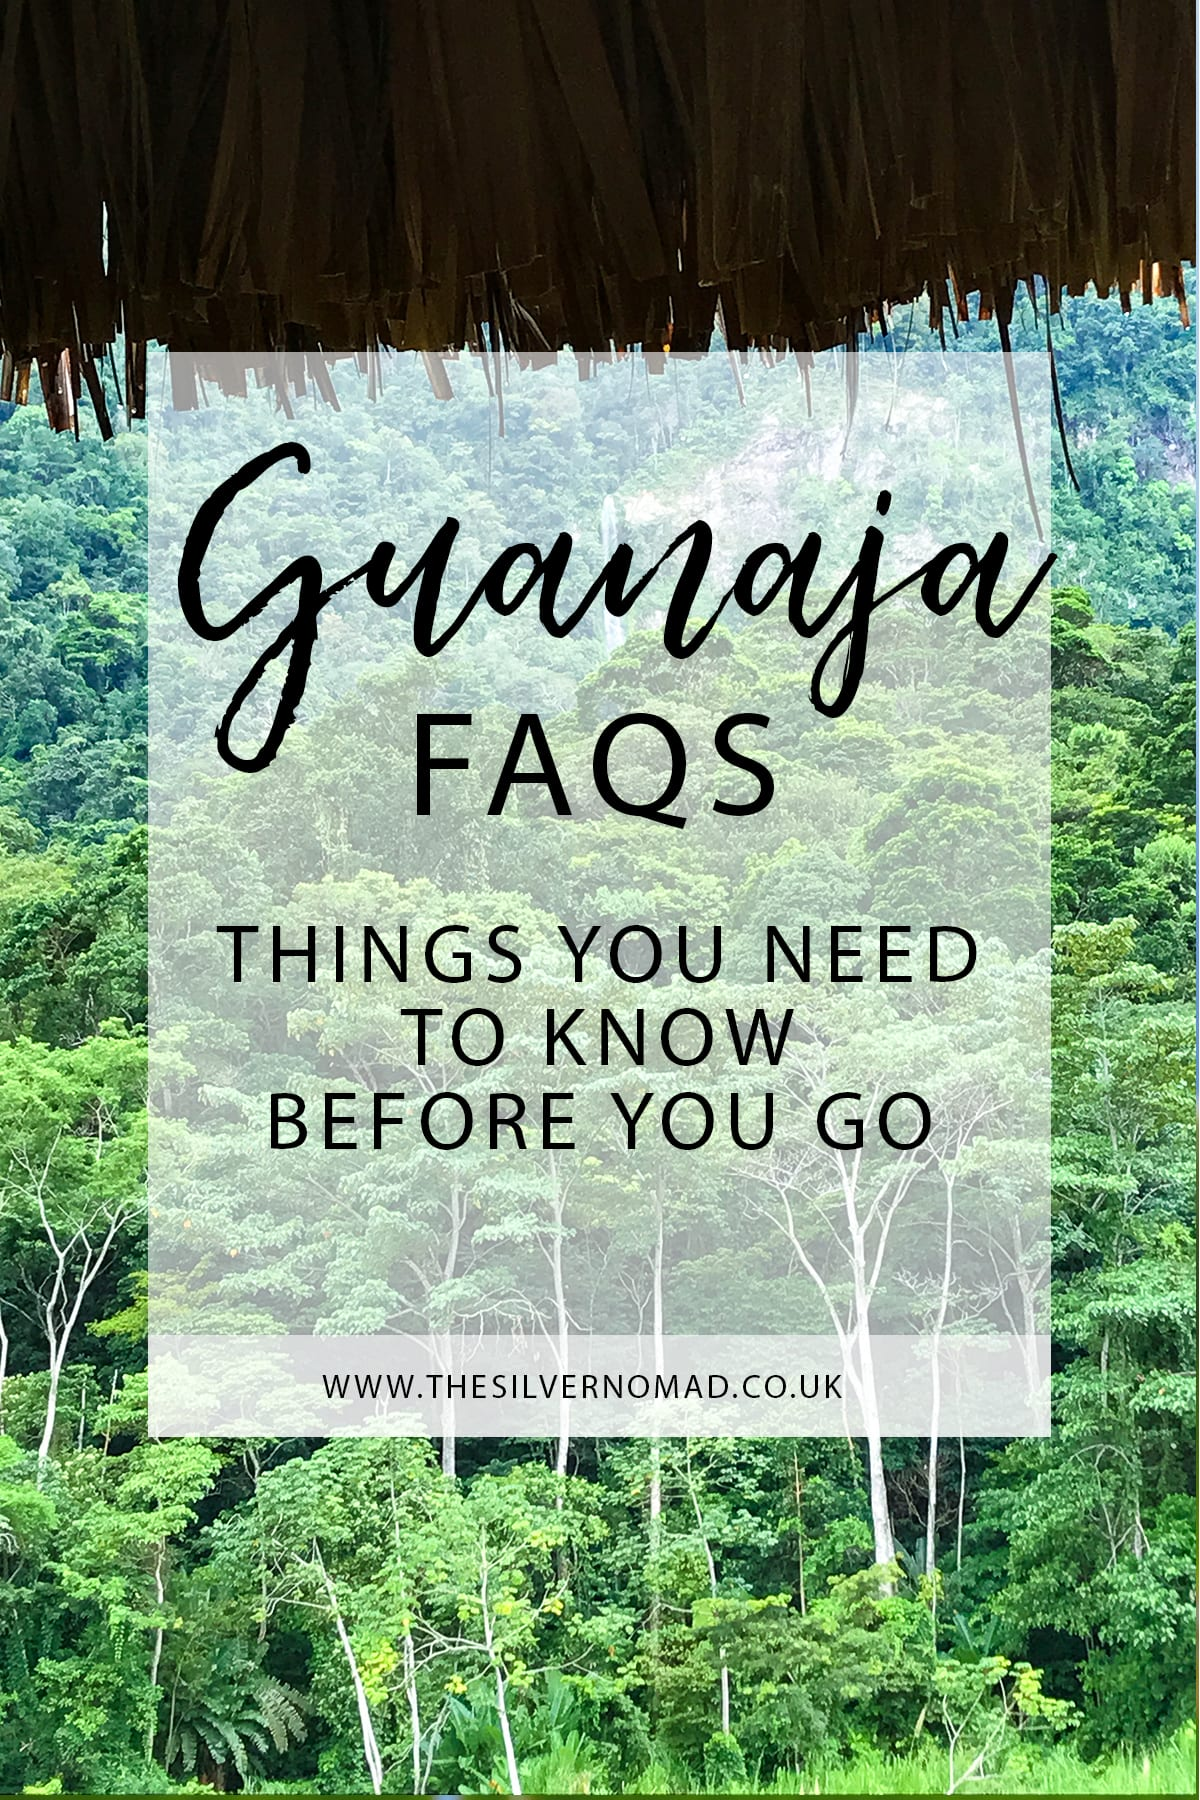 Guanaja FAQs Things you need to know before you go